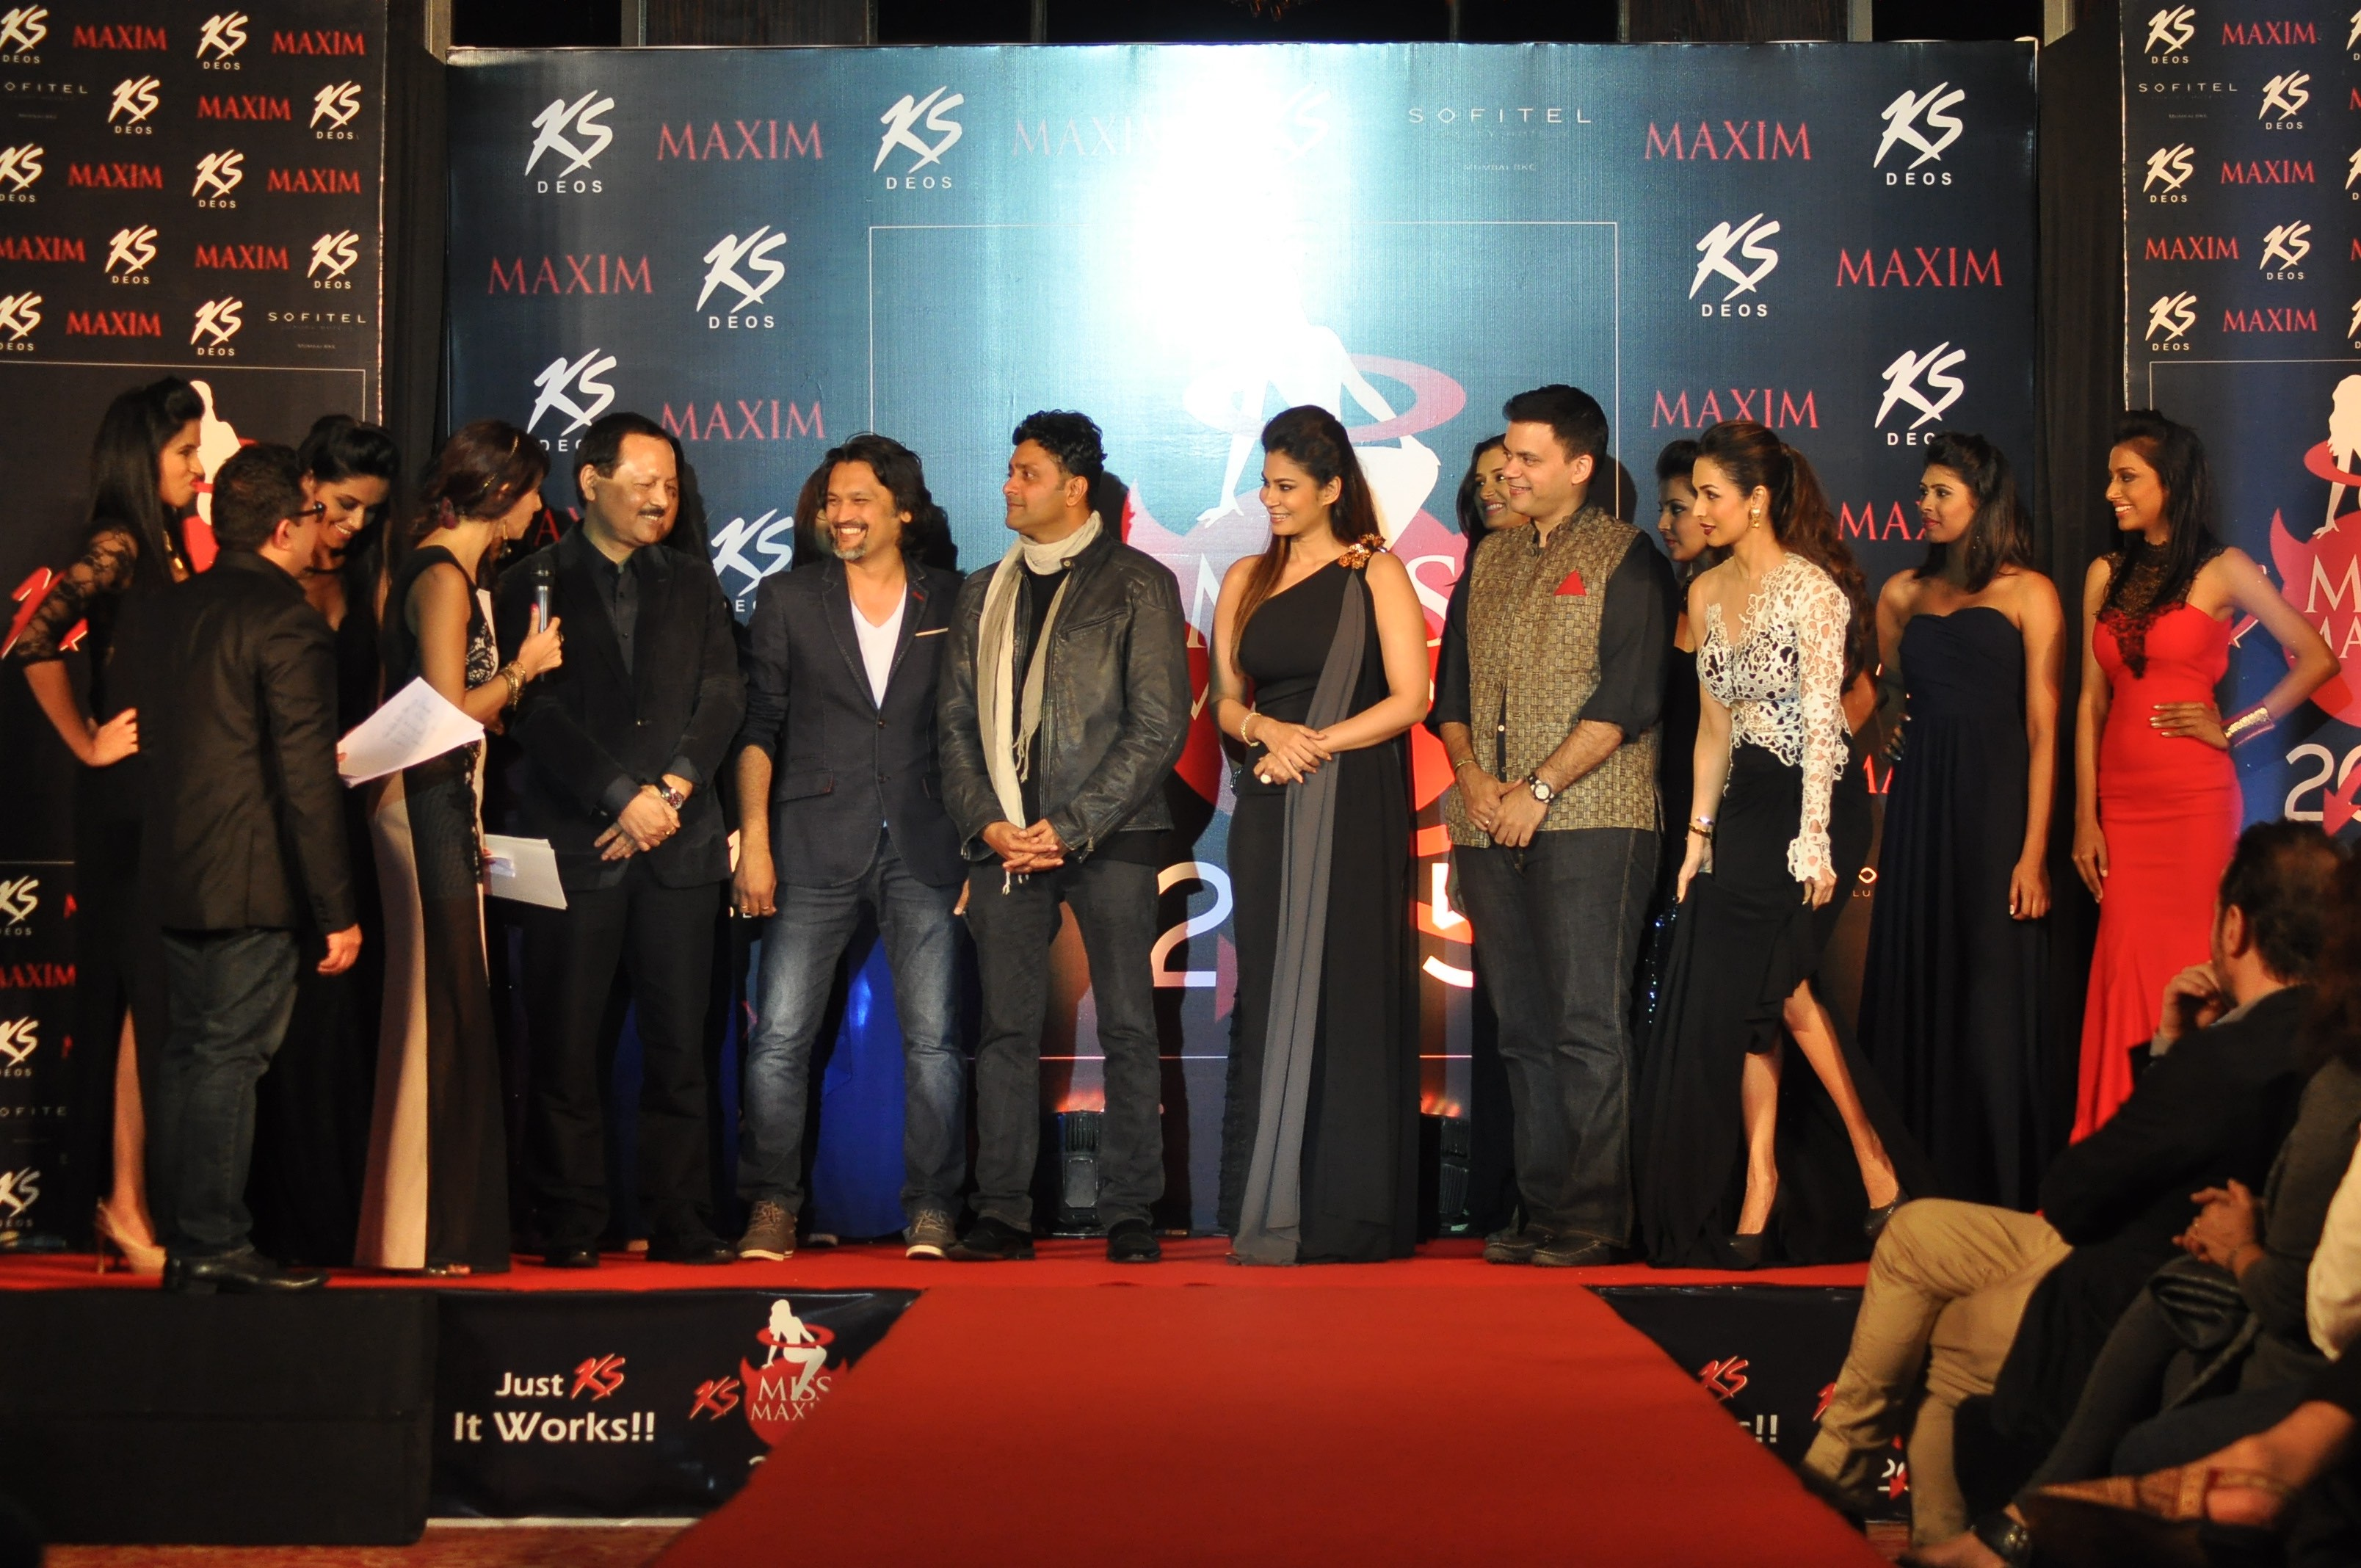 Jury Ranju Mohan ,Jatin kampani, ash Chandler, Shaheen Abbas,Nachiket Barve and Malaika Arora Khan with contestants on stage_1 at Kamasutra Miss Maxim 2015 event